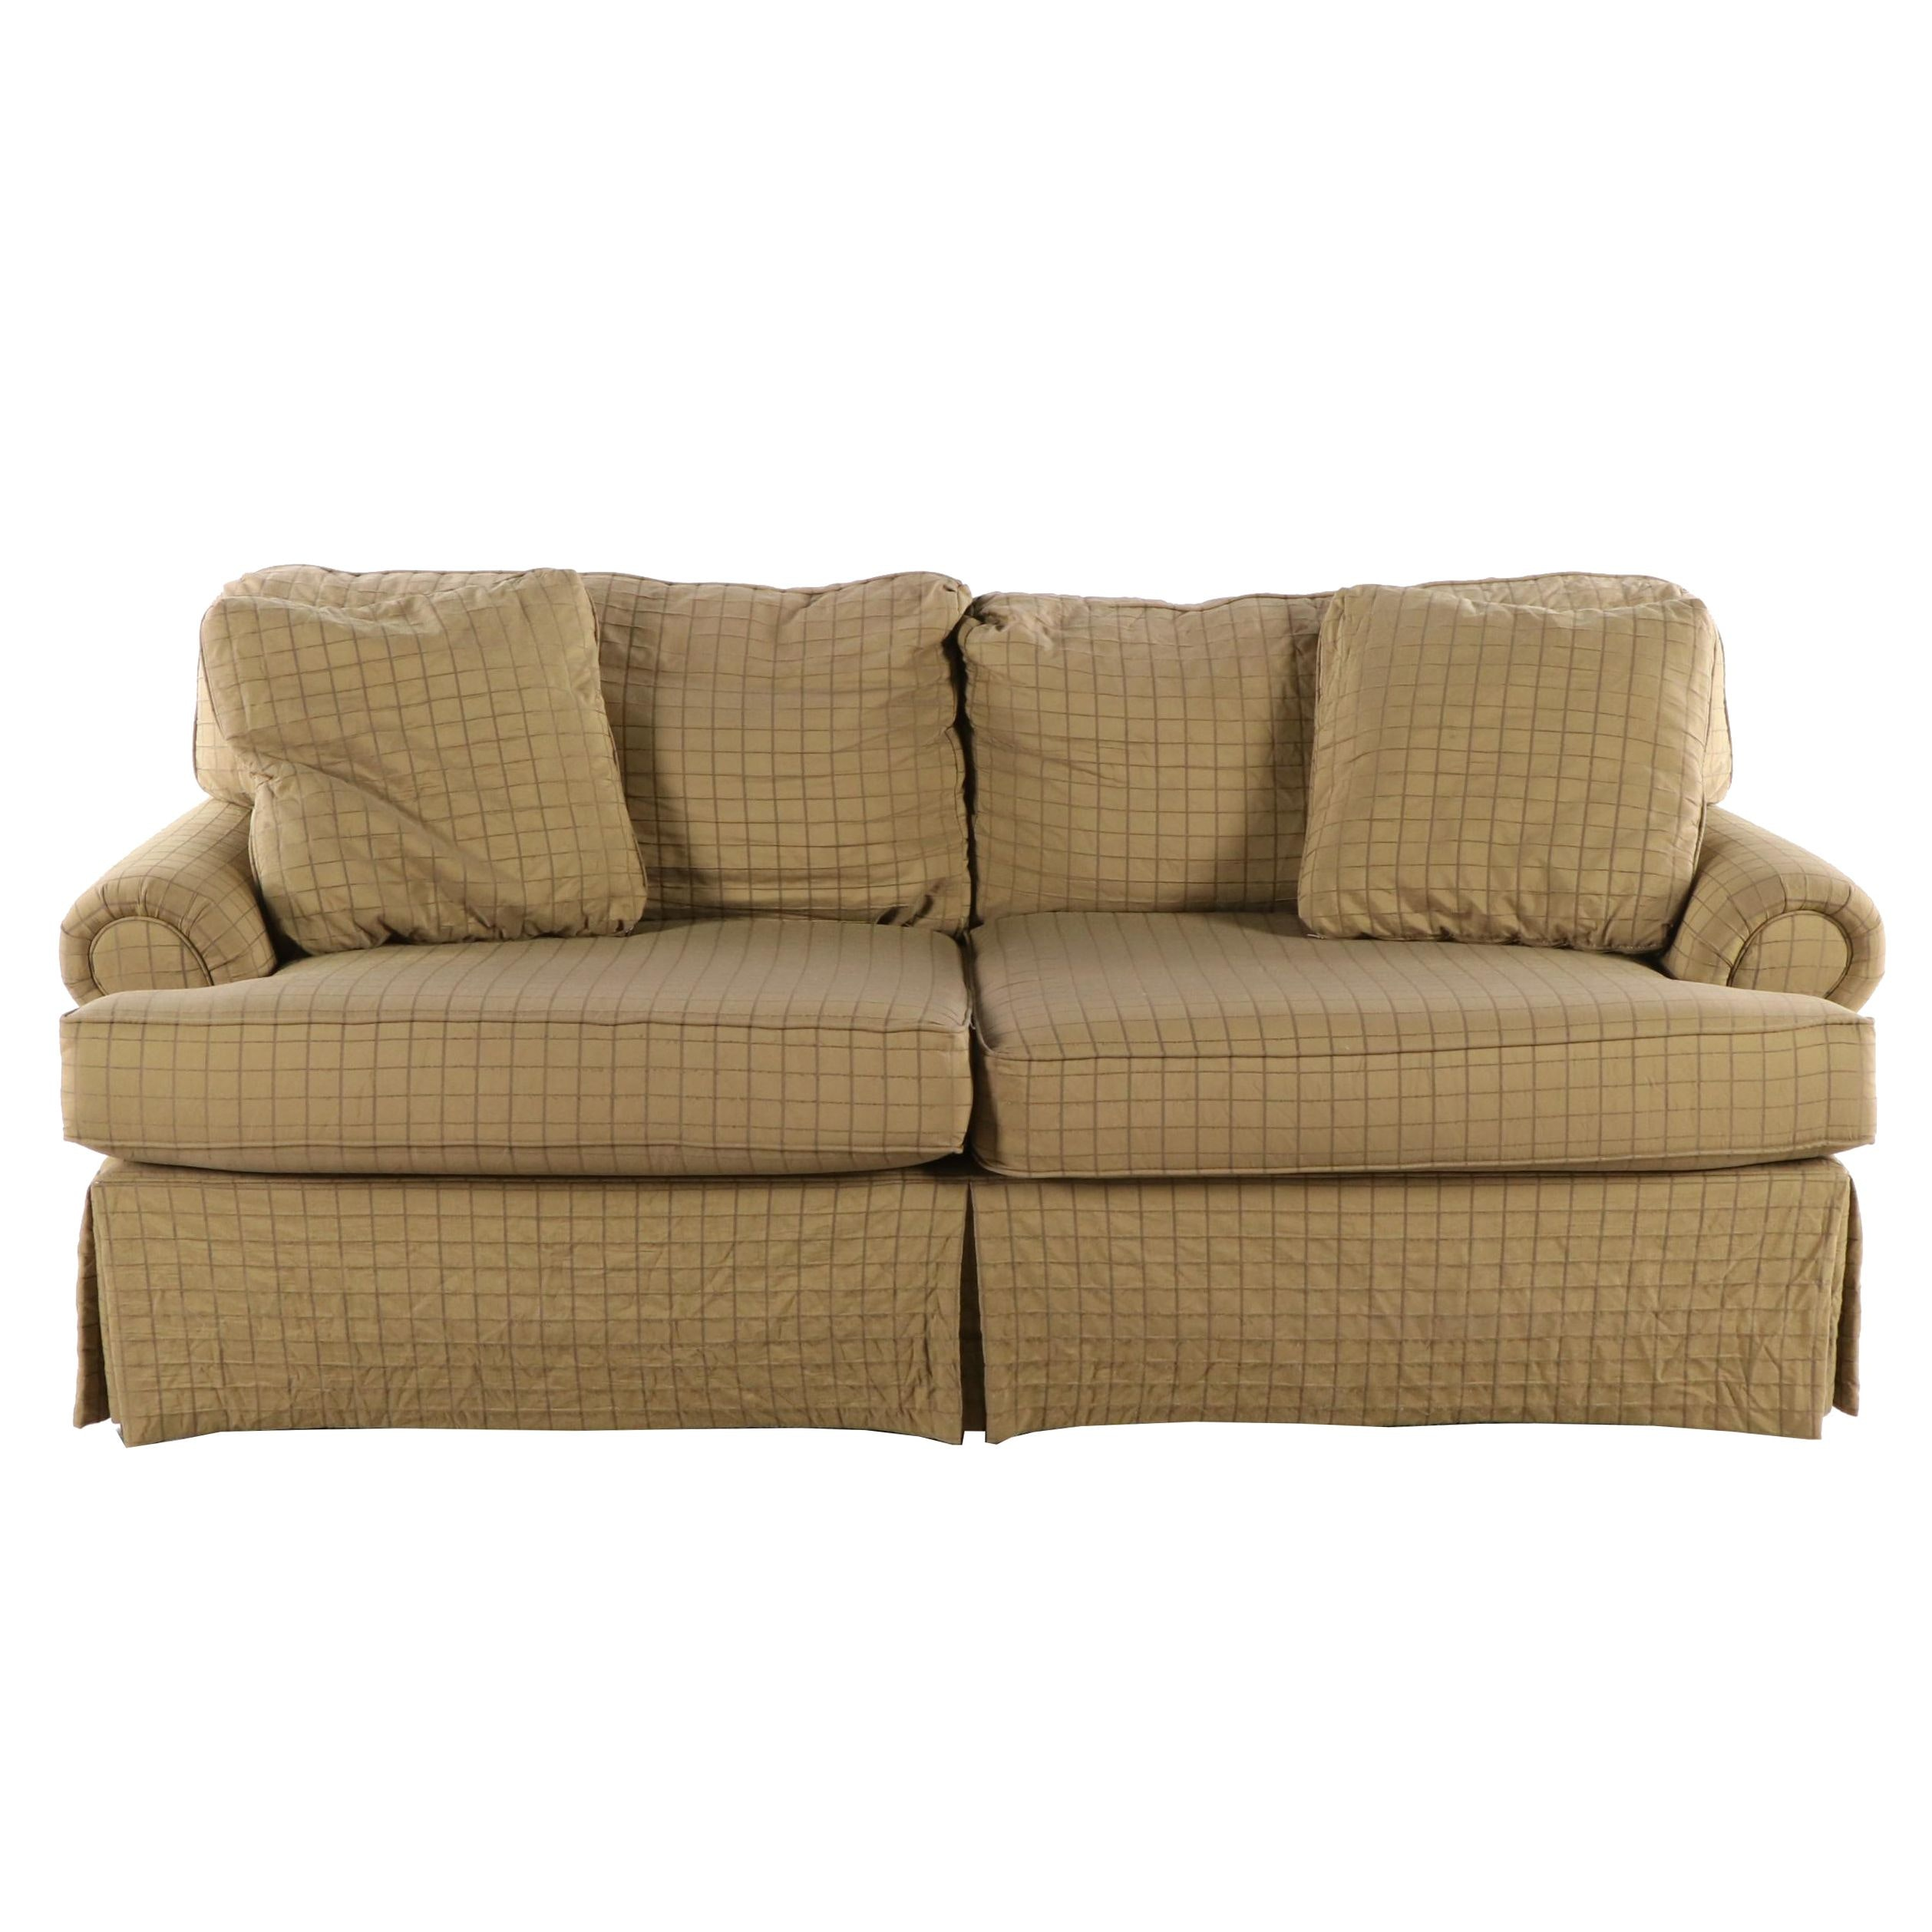 Pennsylvania House Upholstered Down Sofa, 21st Century